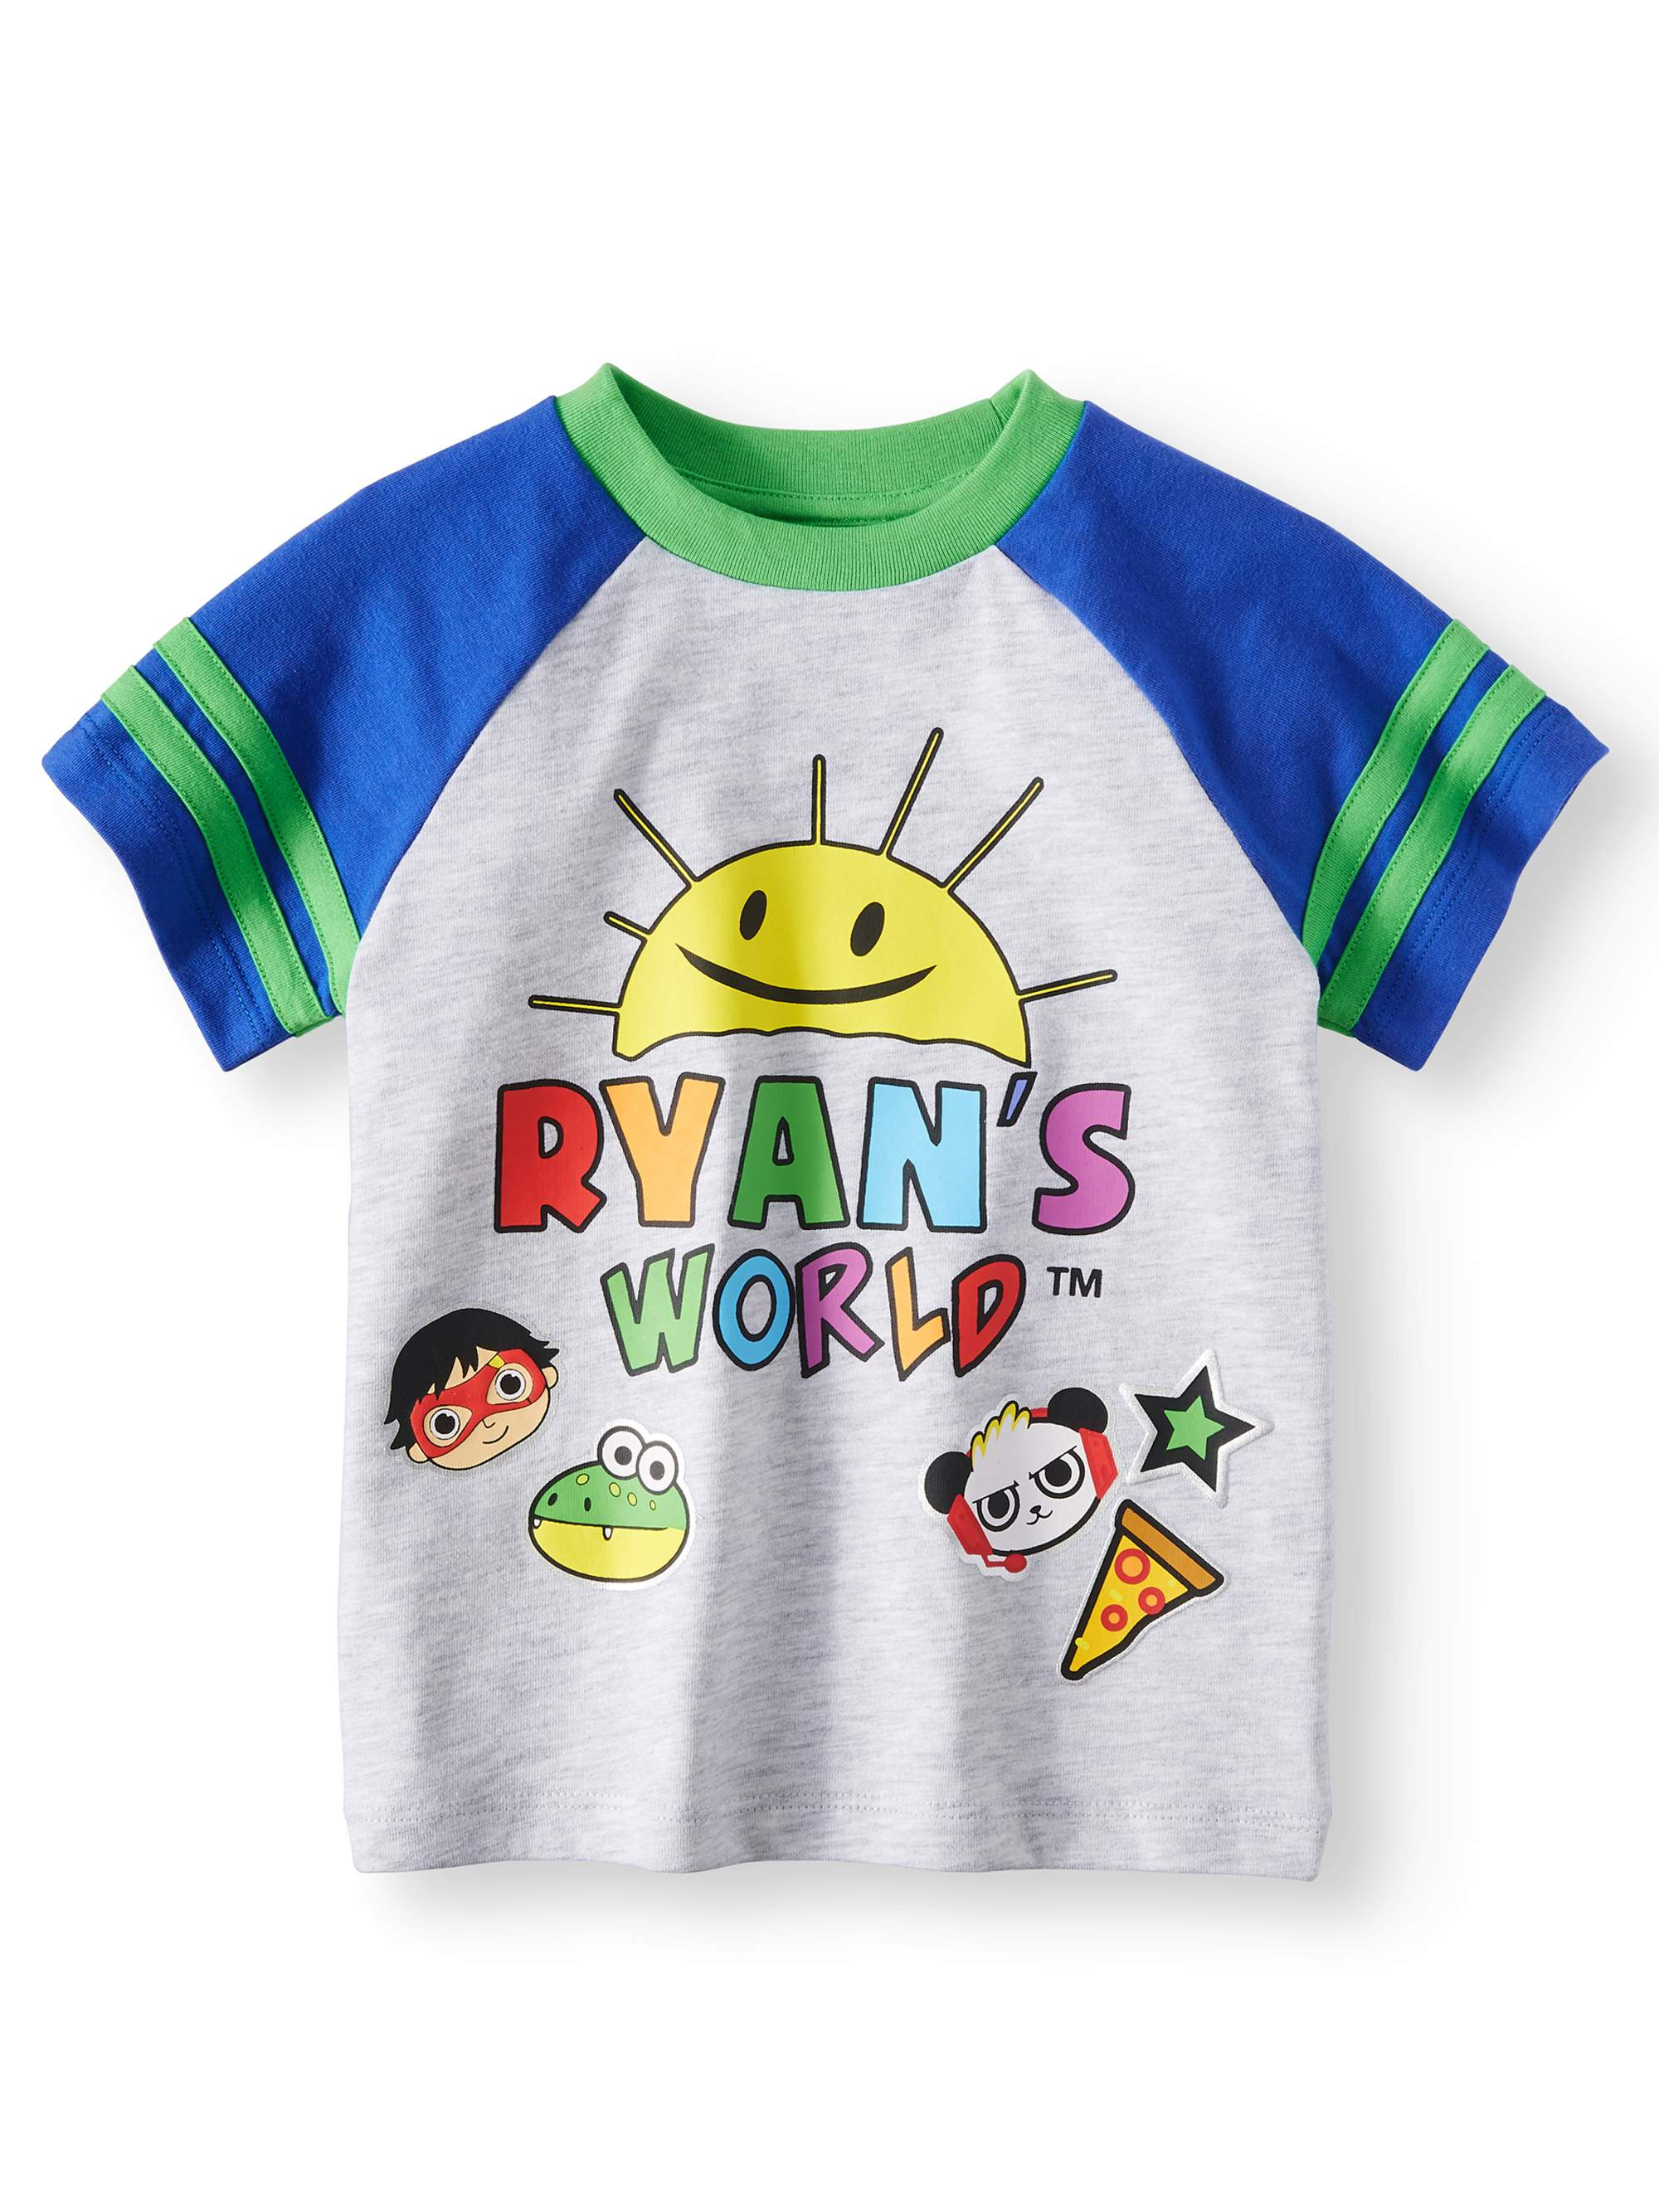 Ryan's World - Ryan's World Short Sleeve Graphic T-Shirt